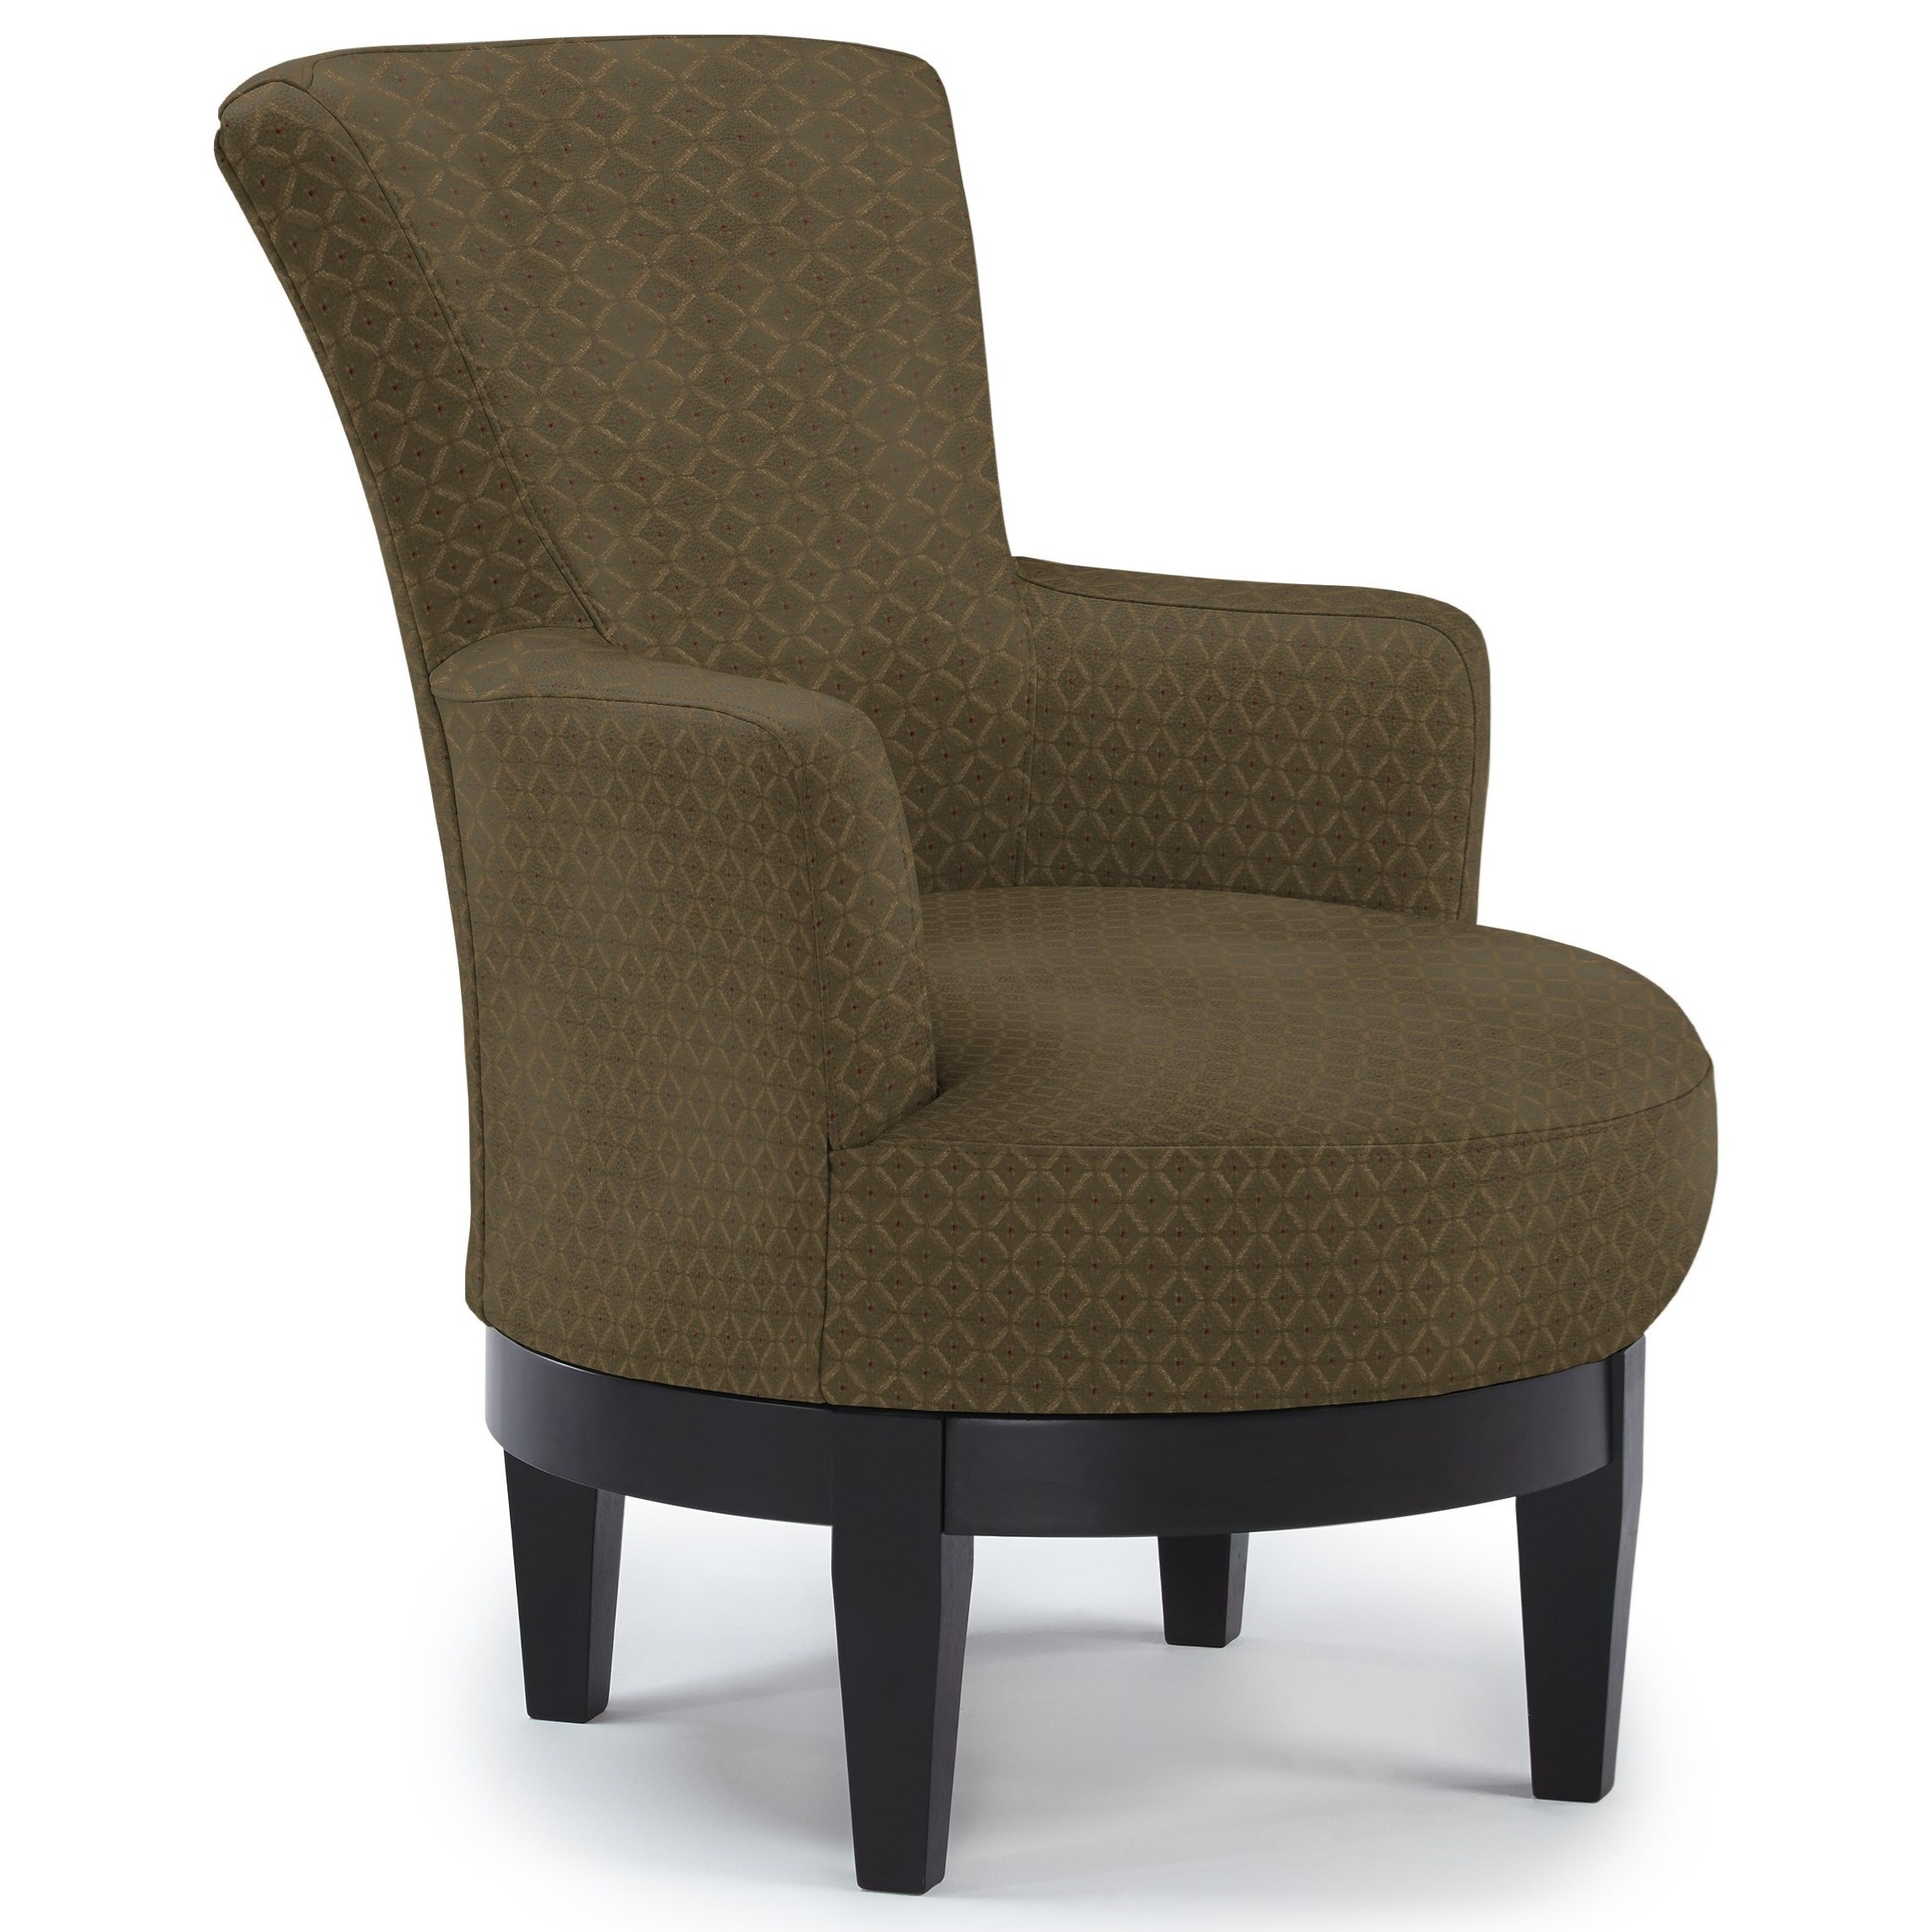 Chairs - Swivel Barrel Swivel Chair by Best Home Furnishings at Lapeer Furniture & Mattress Center